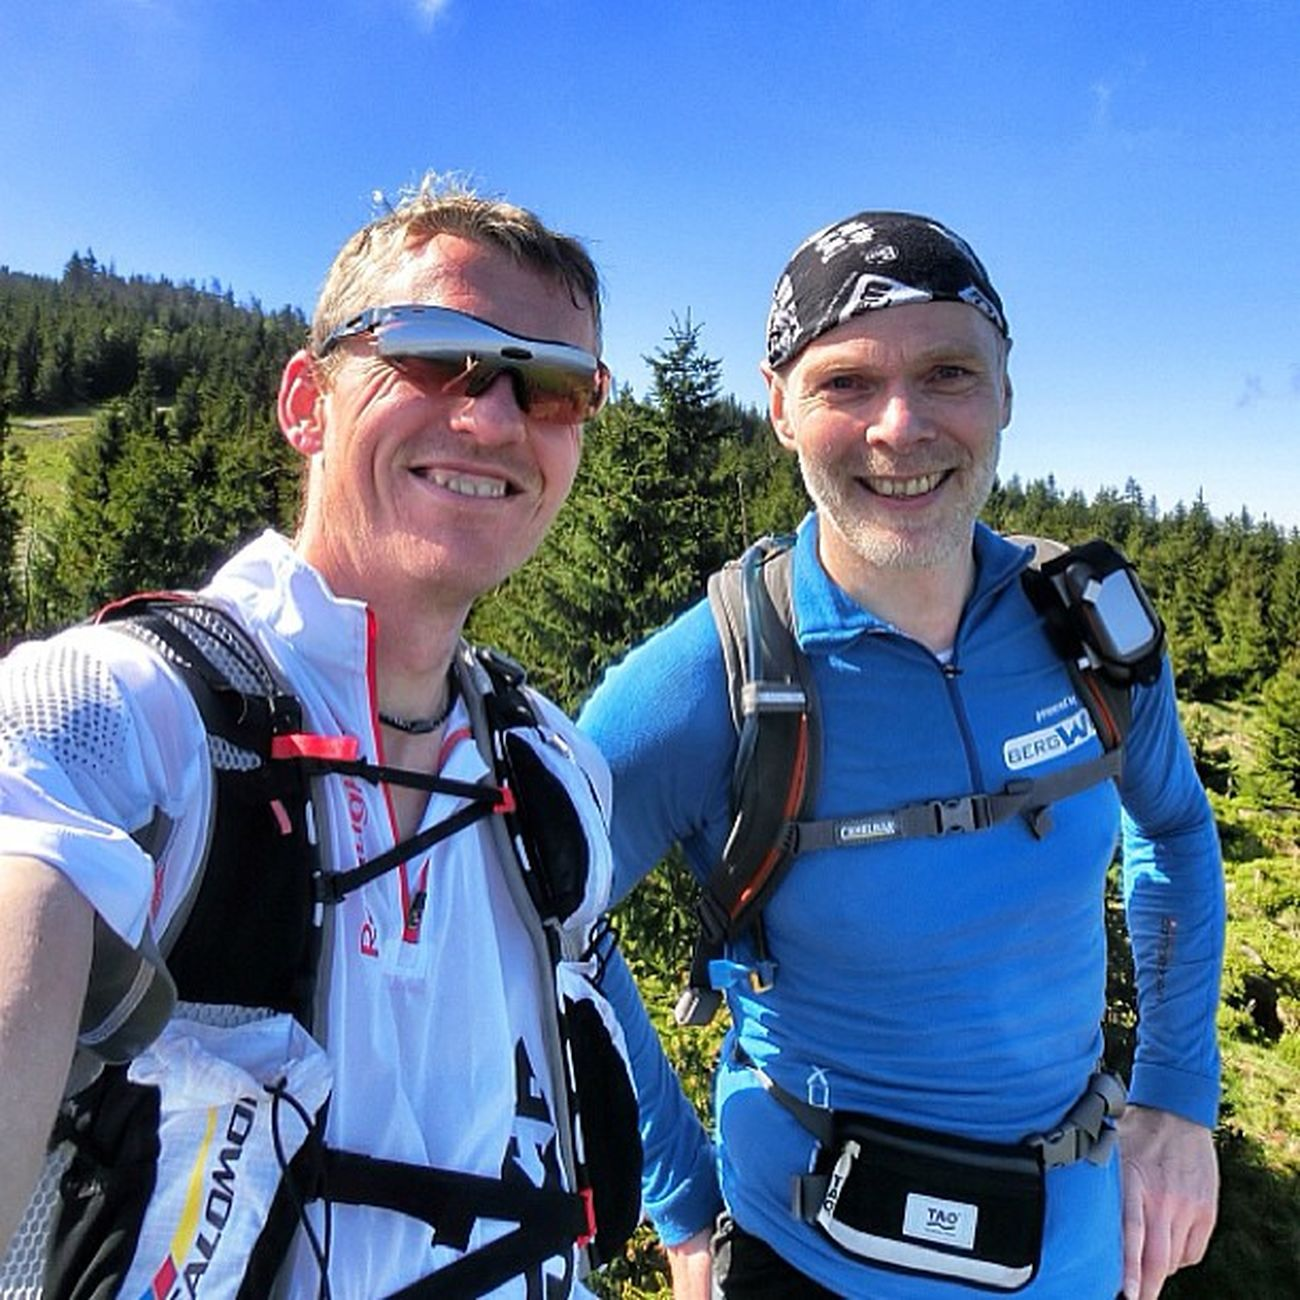 3. PfingstBrockenlauf Sklblog Pfingsten Brocken Trail Trailrunning Ilsenburg Teamraidlight Sziols Xkross